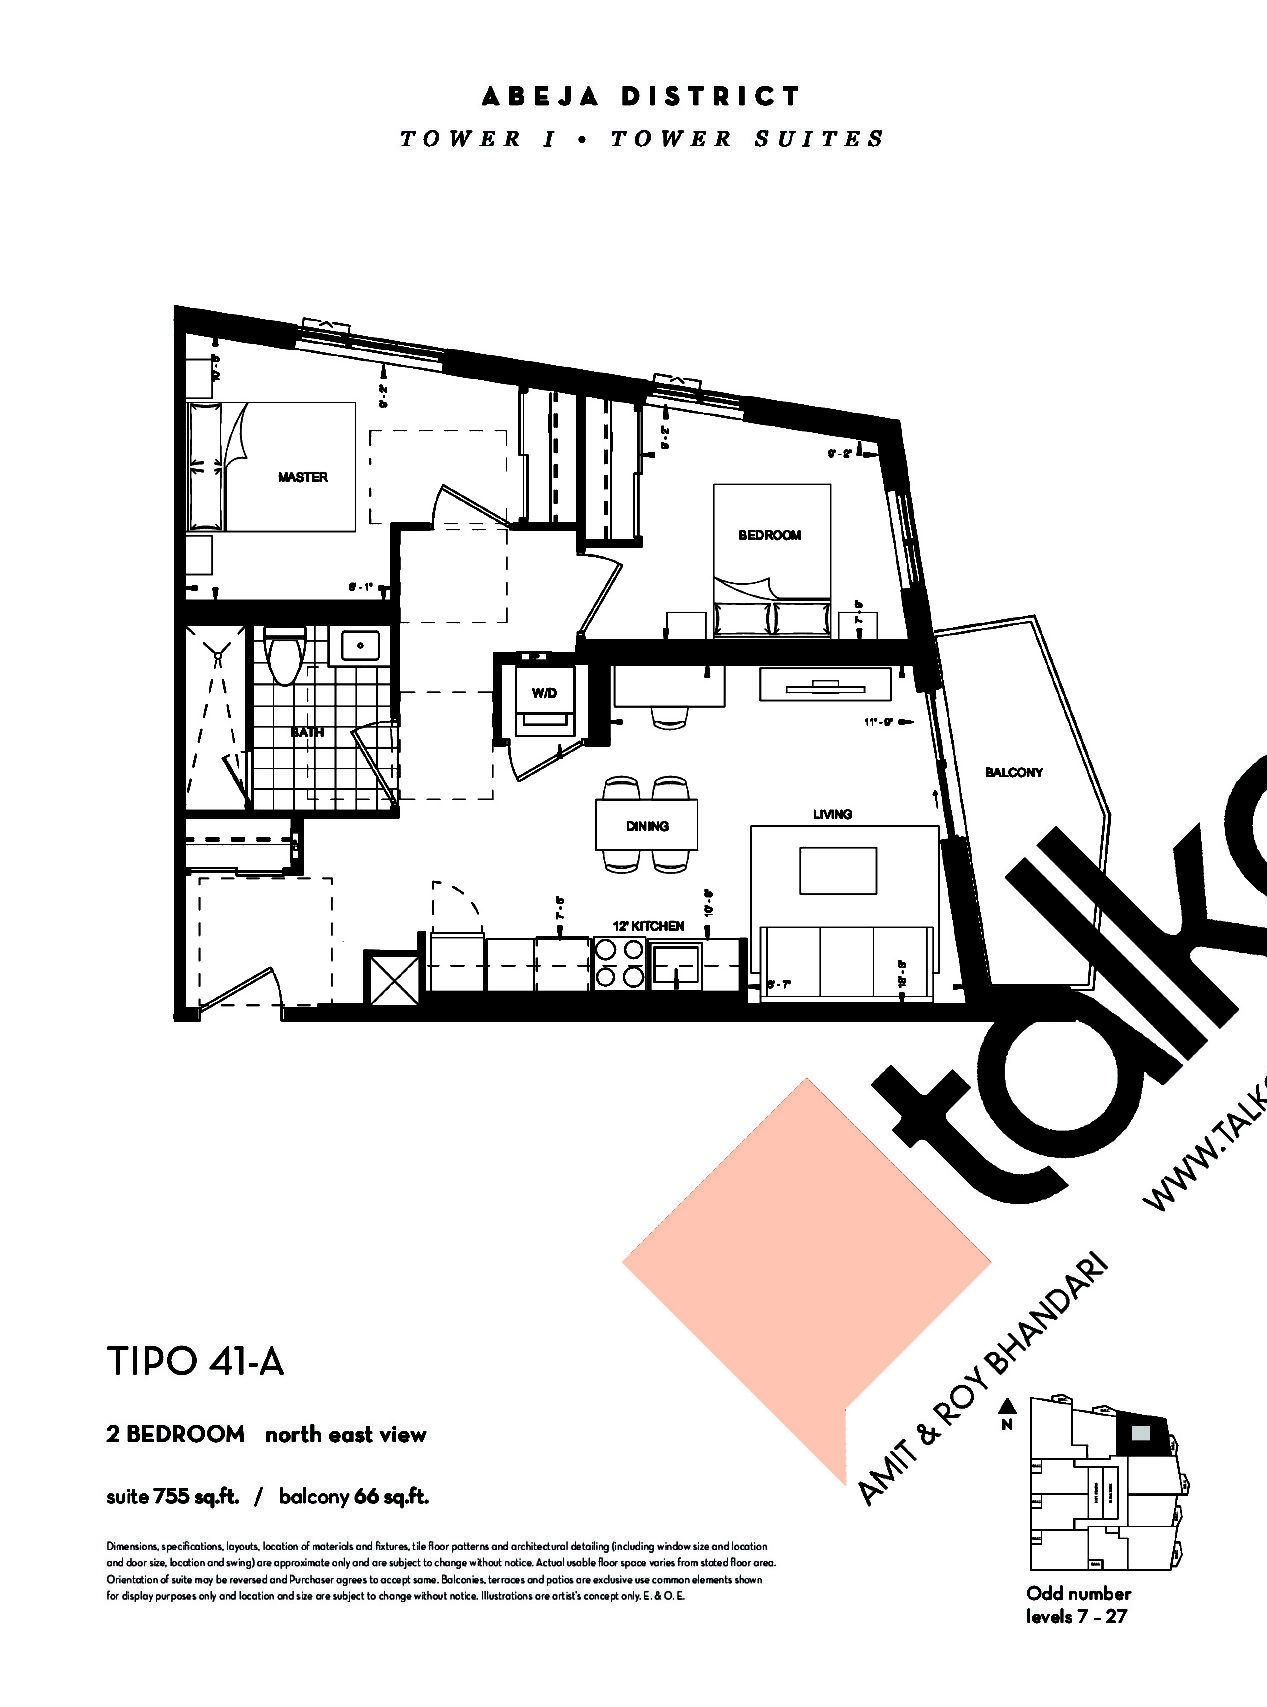 TIPO 41-A (Tower) Floor Plan at Abeja District Condos - 755 sq.ft